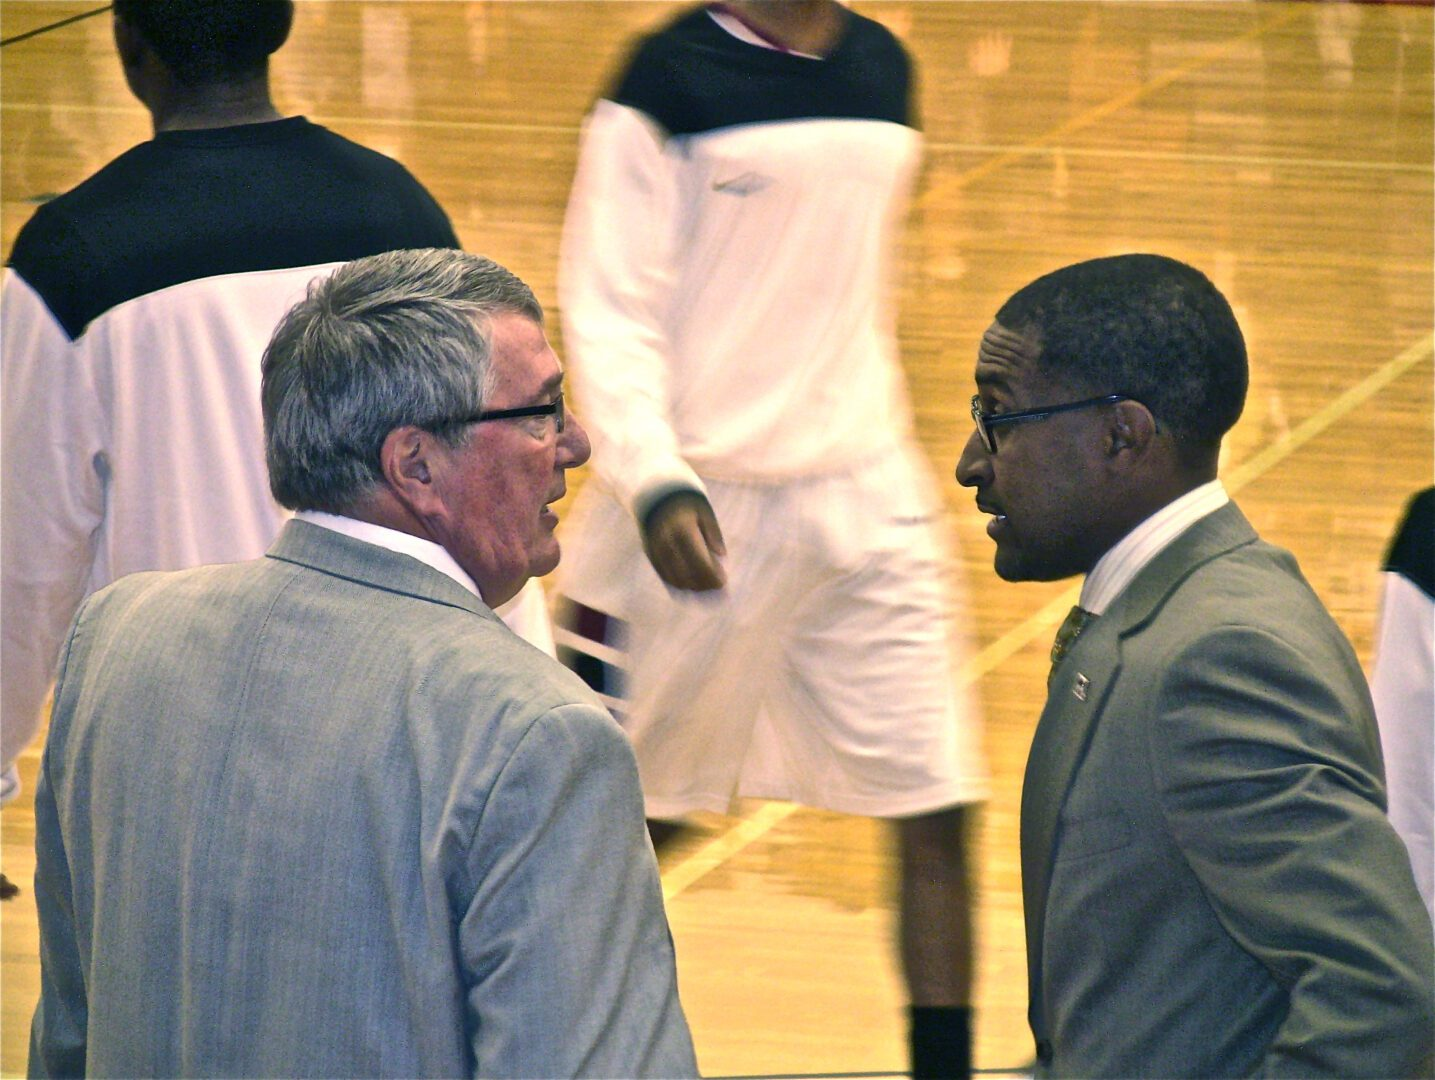 Moyes' Memories: Keith Guy leads at Muskegon from his basketball rich past and competitive drive